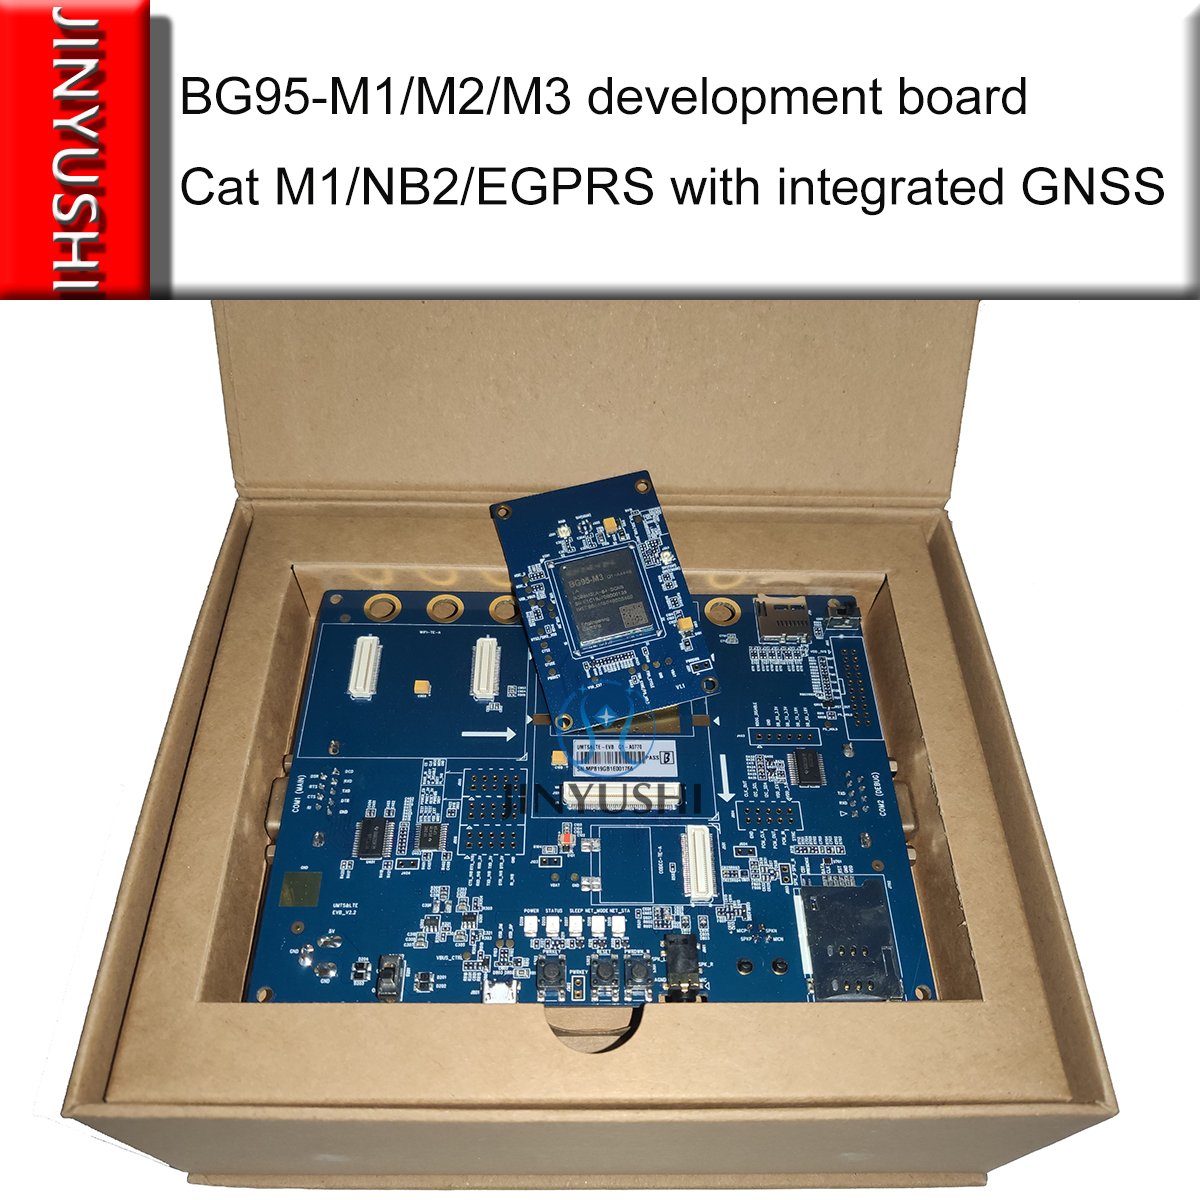 Development Board Breakout BG95-M1 BG95-M2 BG95-M3 BG95M3LATEA-64-SGNS Cat M1/NB2/EGPRS With Integrated GNSS With 3GPP Rel. 14